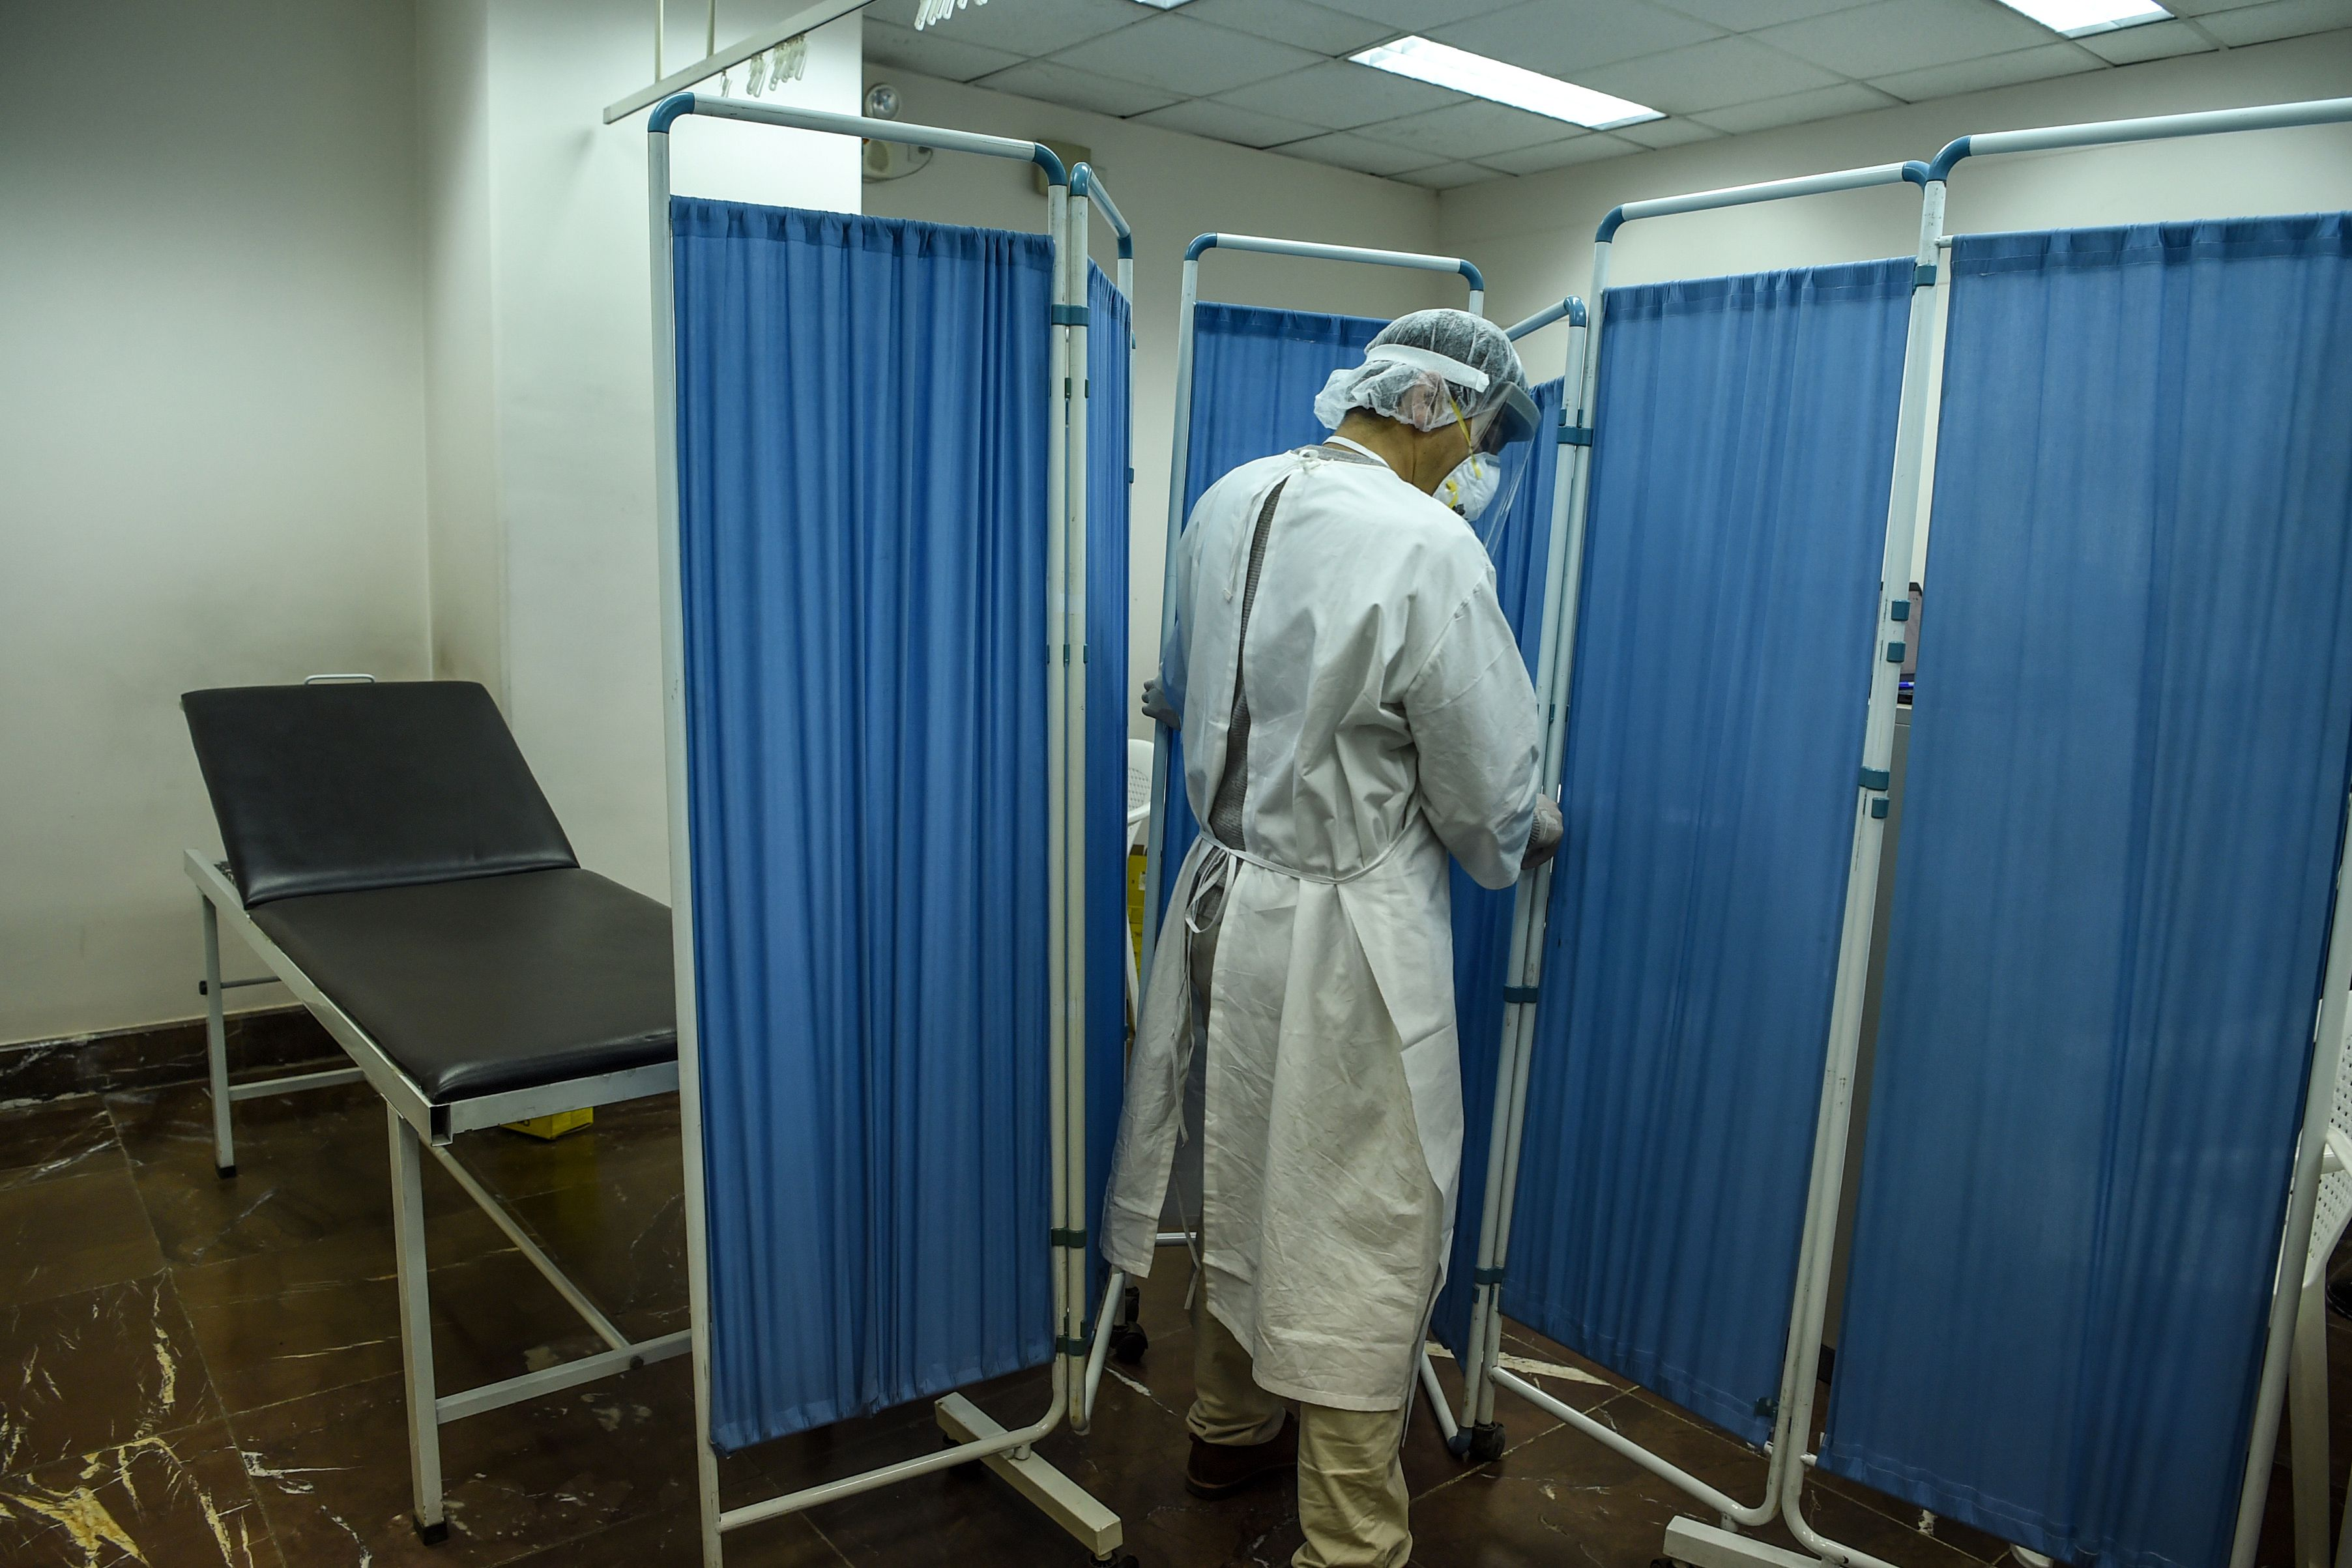 A health services staff member in an isolation ward at the Hamid Karzai International Airport in Kabul, Afghanistan on February 2.